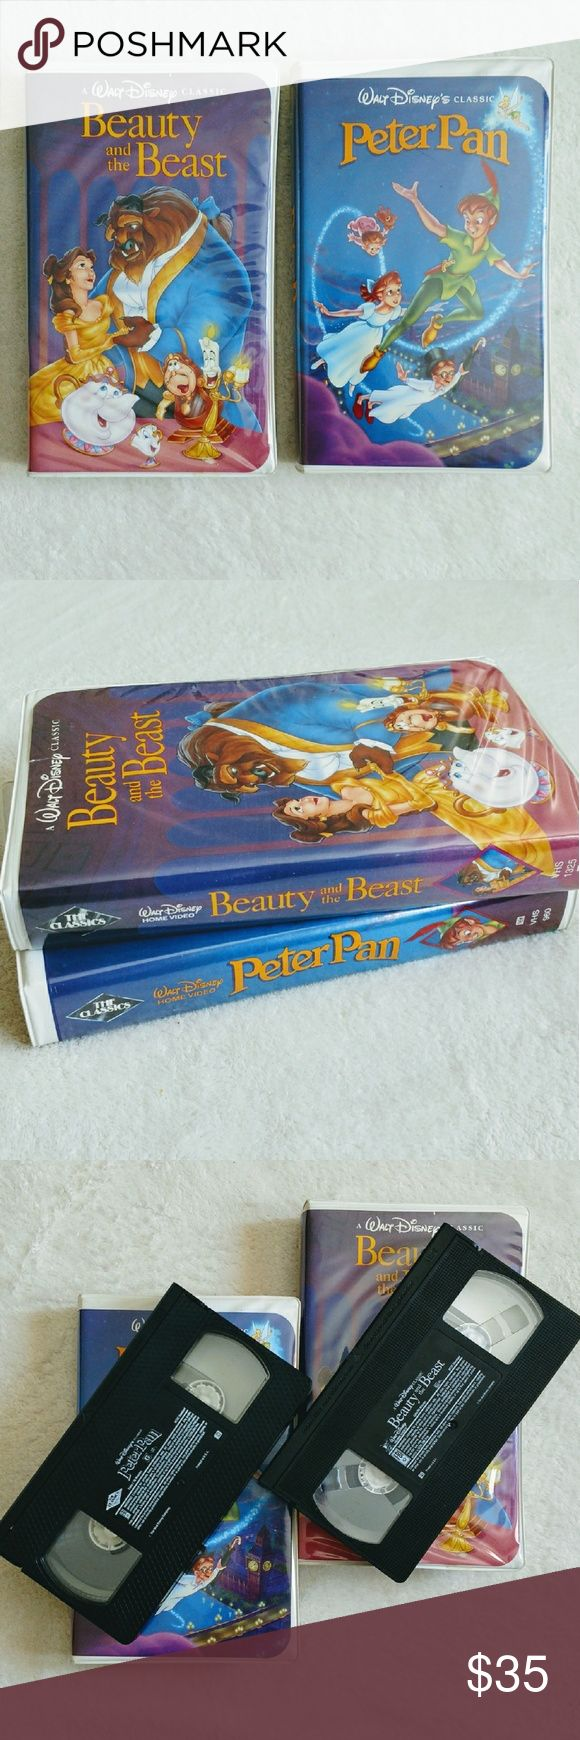 Diamond Collection Beauty & the Beast / Peter Pan Set of 2 This set features the diamond collection version of Beauty and the Beast and Peter Pan on VHS. The clamshell boxes are in good condition with a corner of the Peter Pan box sunken in (please see last picture). The artwork is also in good shape with only minor wear and tear.  Tags: diamond collection, Disney, Walt Disney, beauty and the beast, Peter pan, classic, movies, set of 2, clamshell VHS, 90s Disney Other